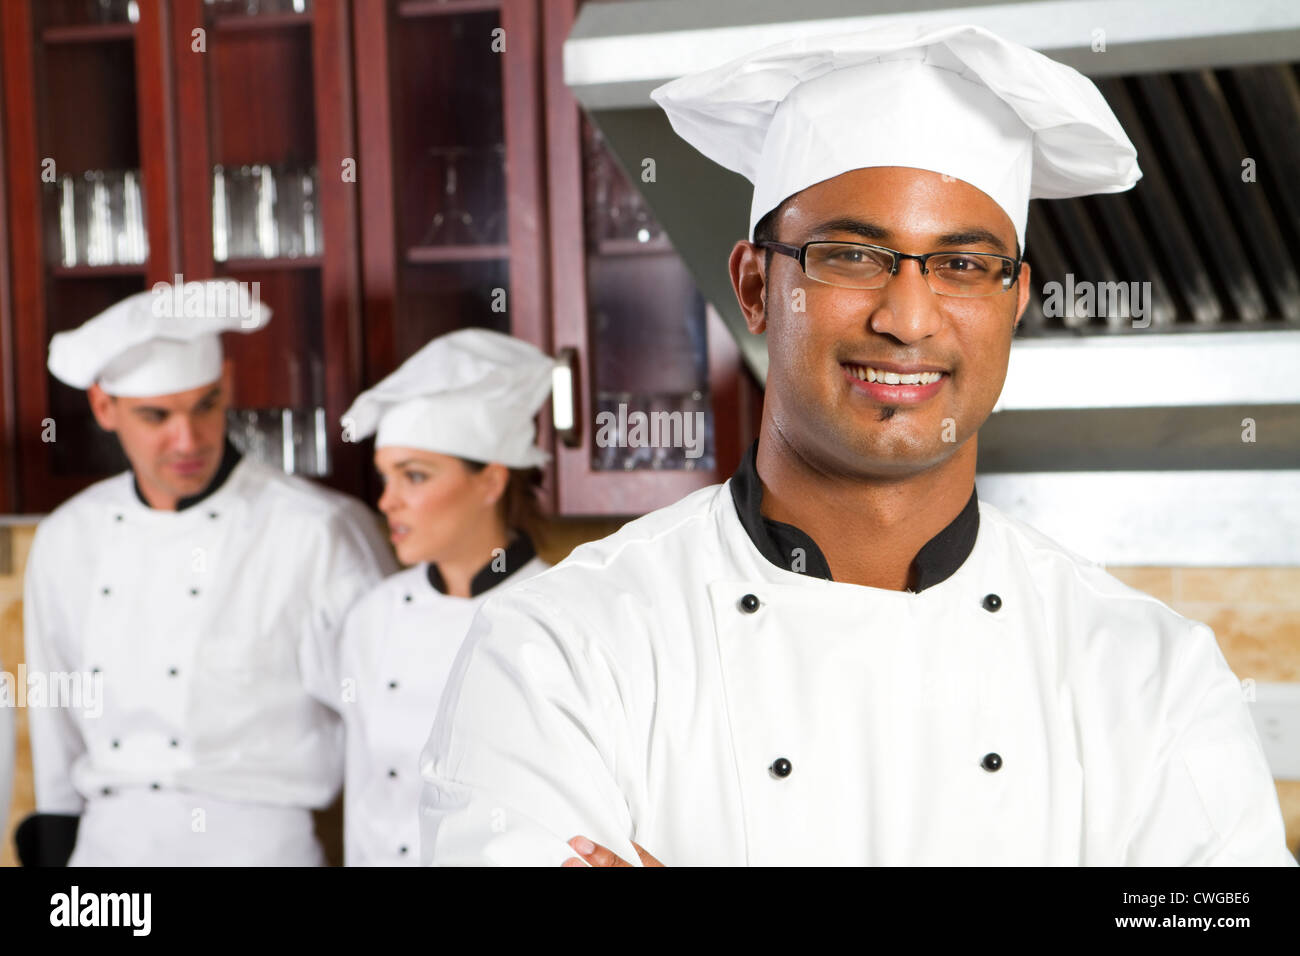 professional indian chef in kitchen with colleagues - Stock Image